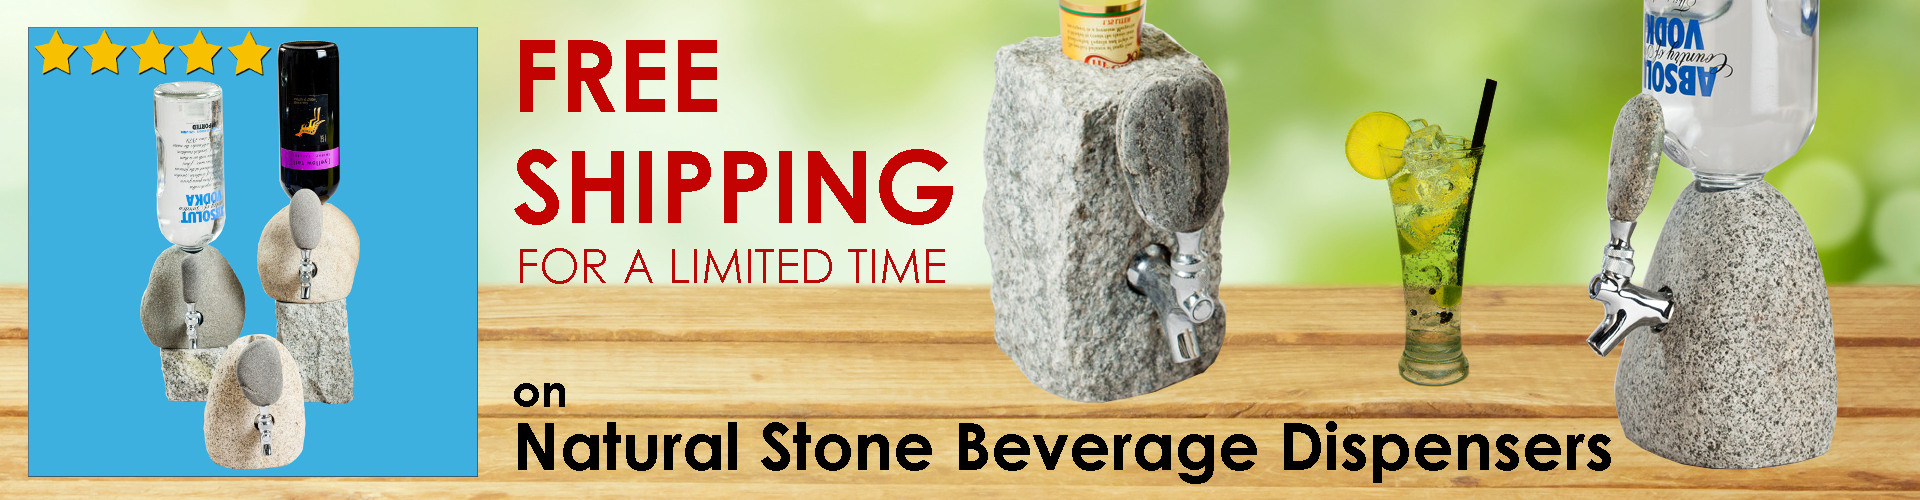 FREE Shipping for a Limited Time on Natural Stone Beverage Dispensers - Handcrafted, Made in USA